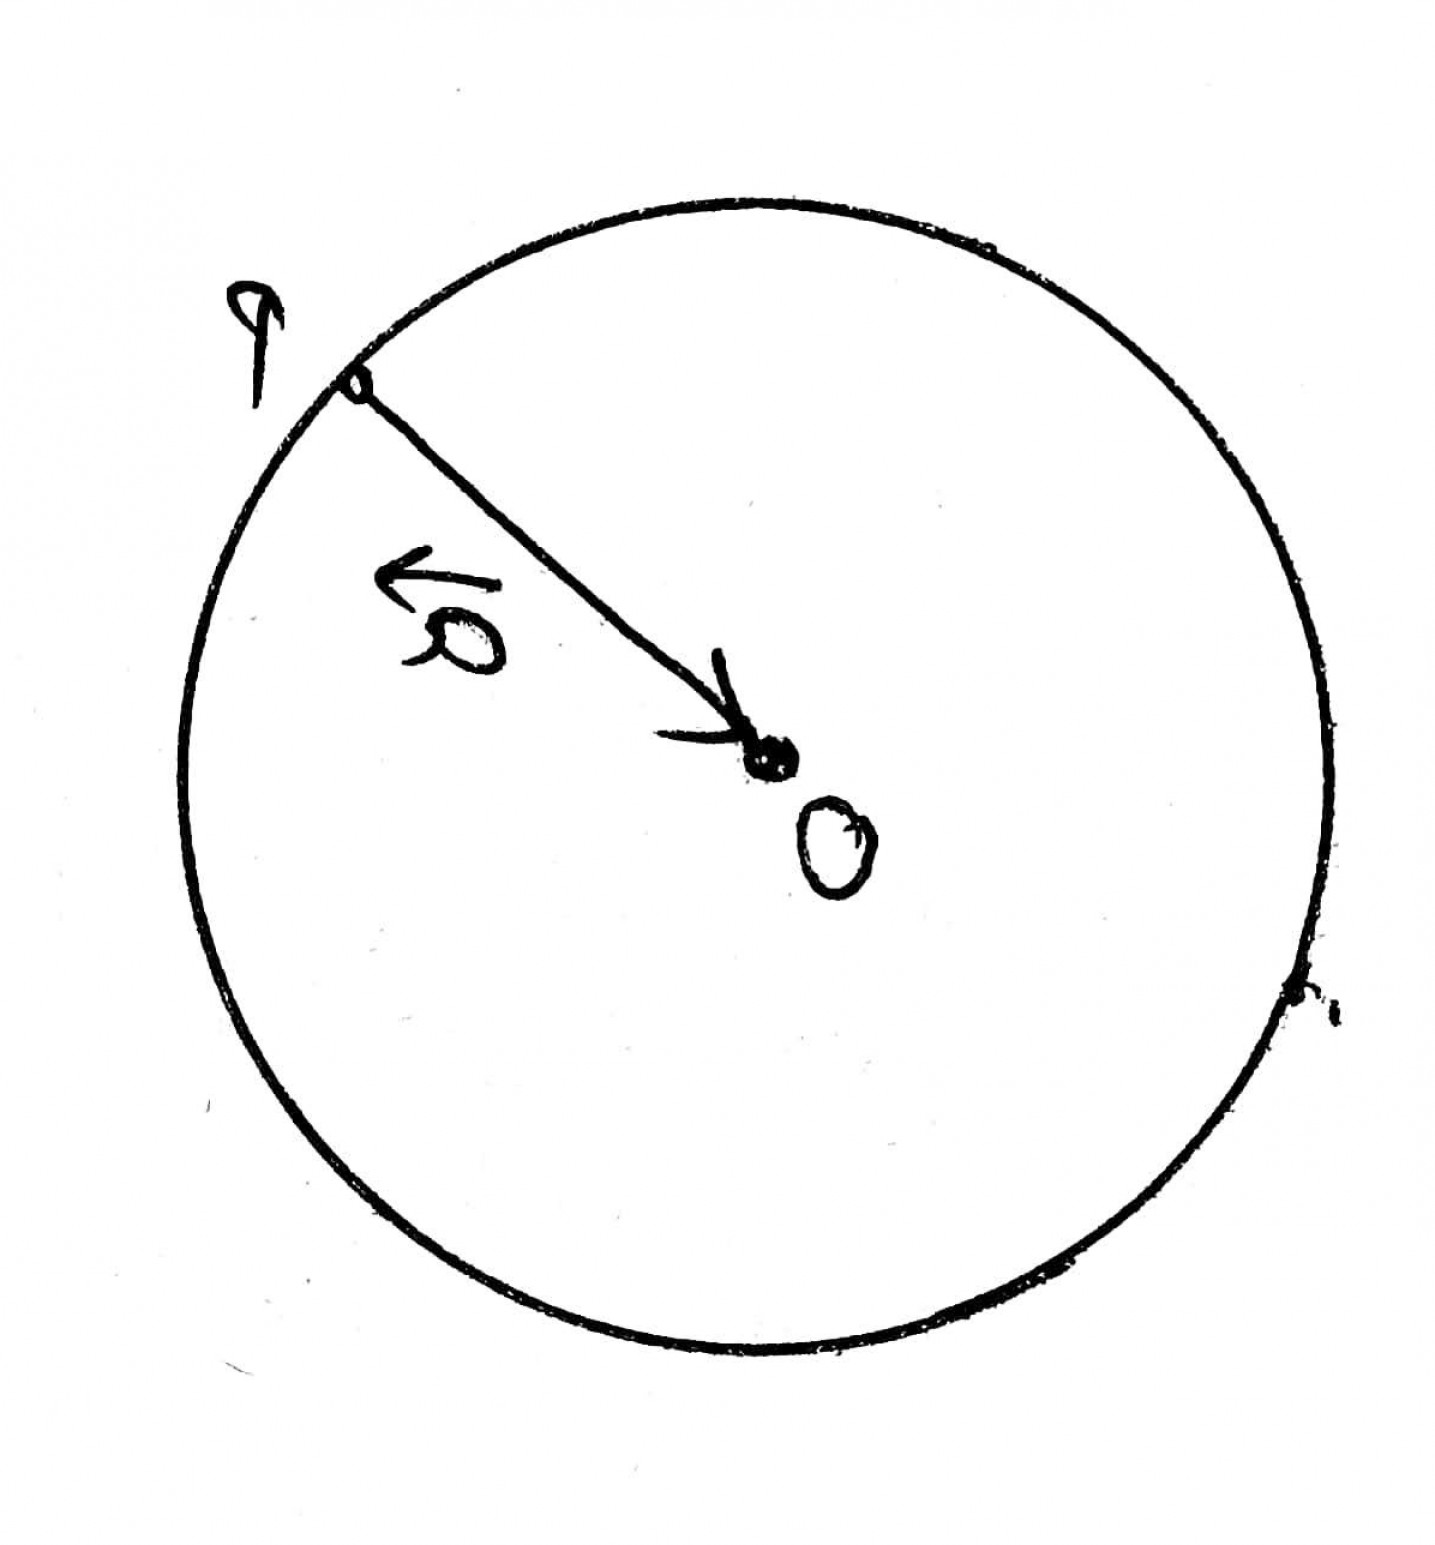 Position Vector Of A Circle Formula: What Is The Direction Of Acceleration Of Particle In A Uniform Circular Motion